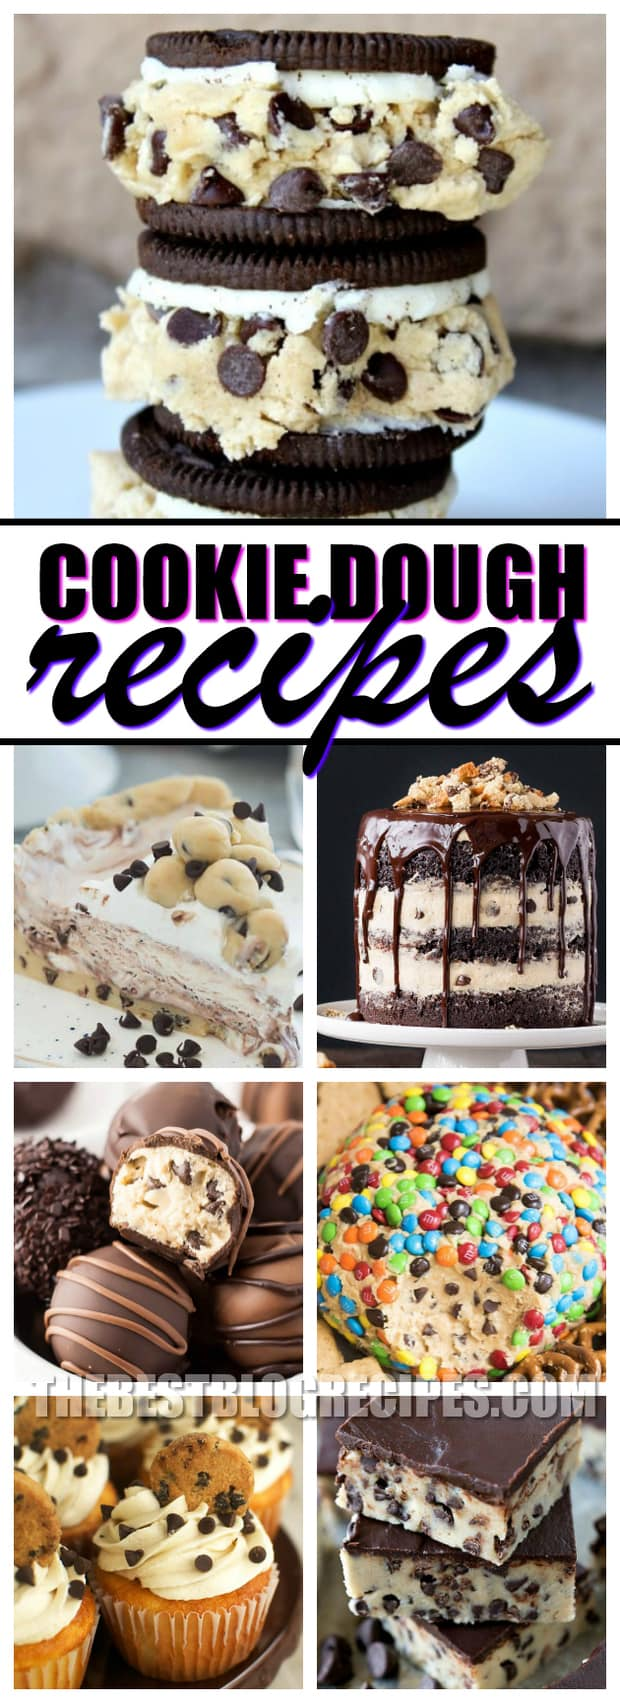 In love with Cookie Dough? So are we!!! That's why we've created the most drool-worthy, and downright sinfully delicious list of 21 Cookie Dough Recipes to make if you're OBSESSED with Cookie Dough. From stuffed Oreos, to cheesecake and fudge — they are all easy to make and oh-so incredibly delicious too!